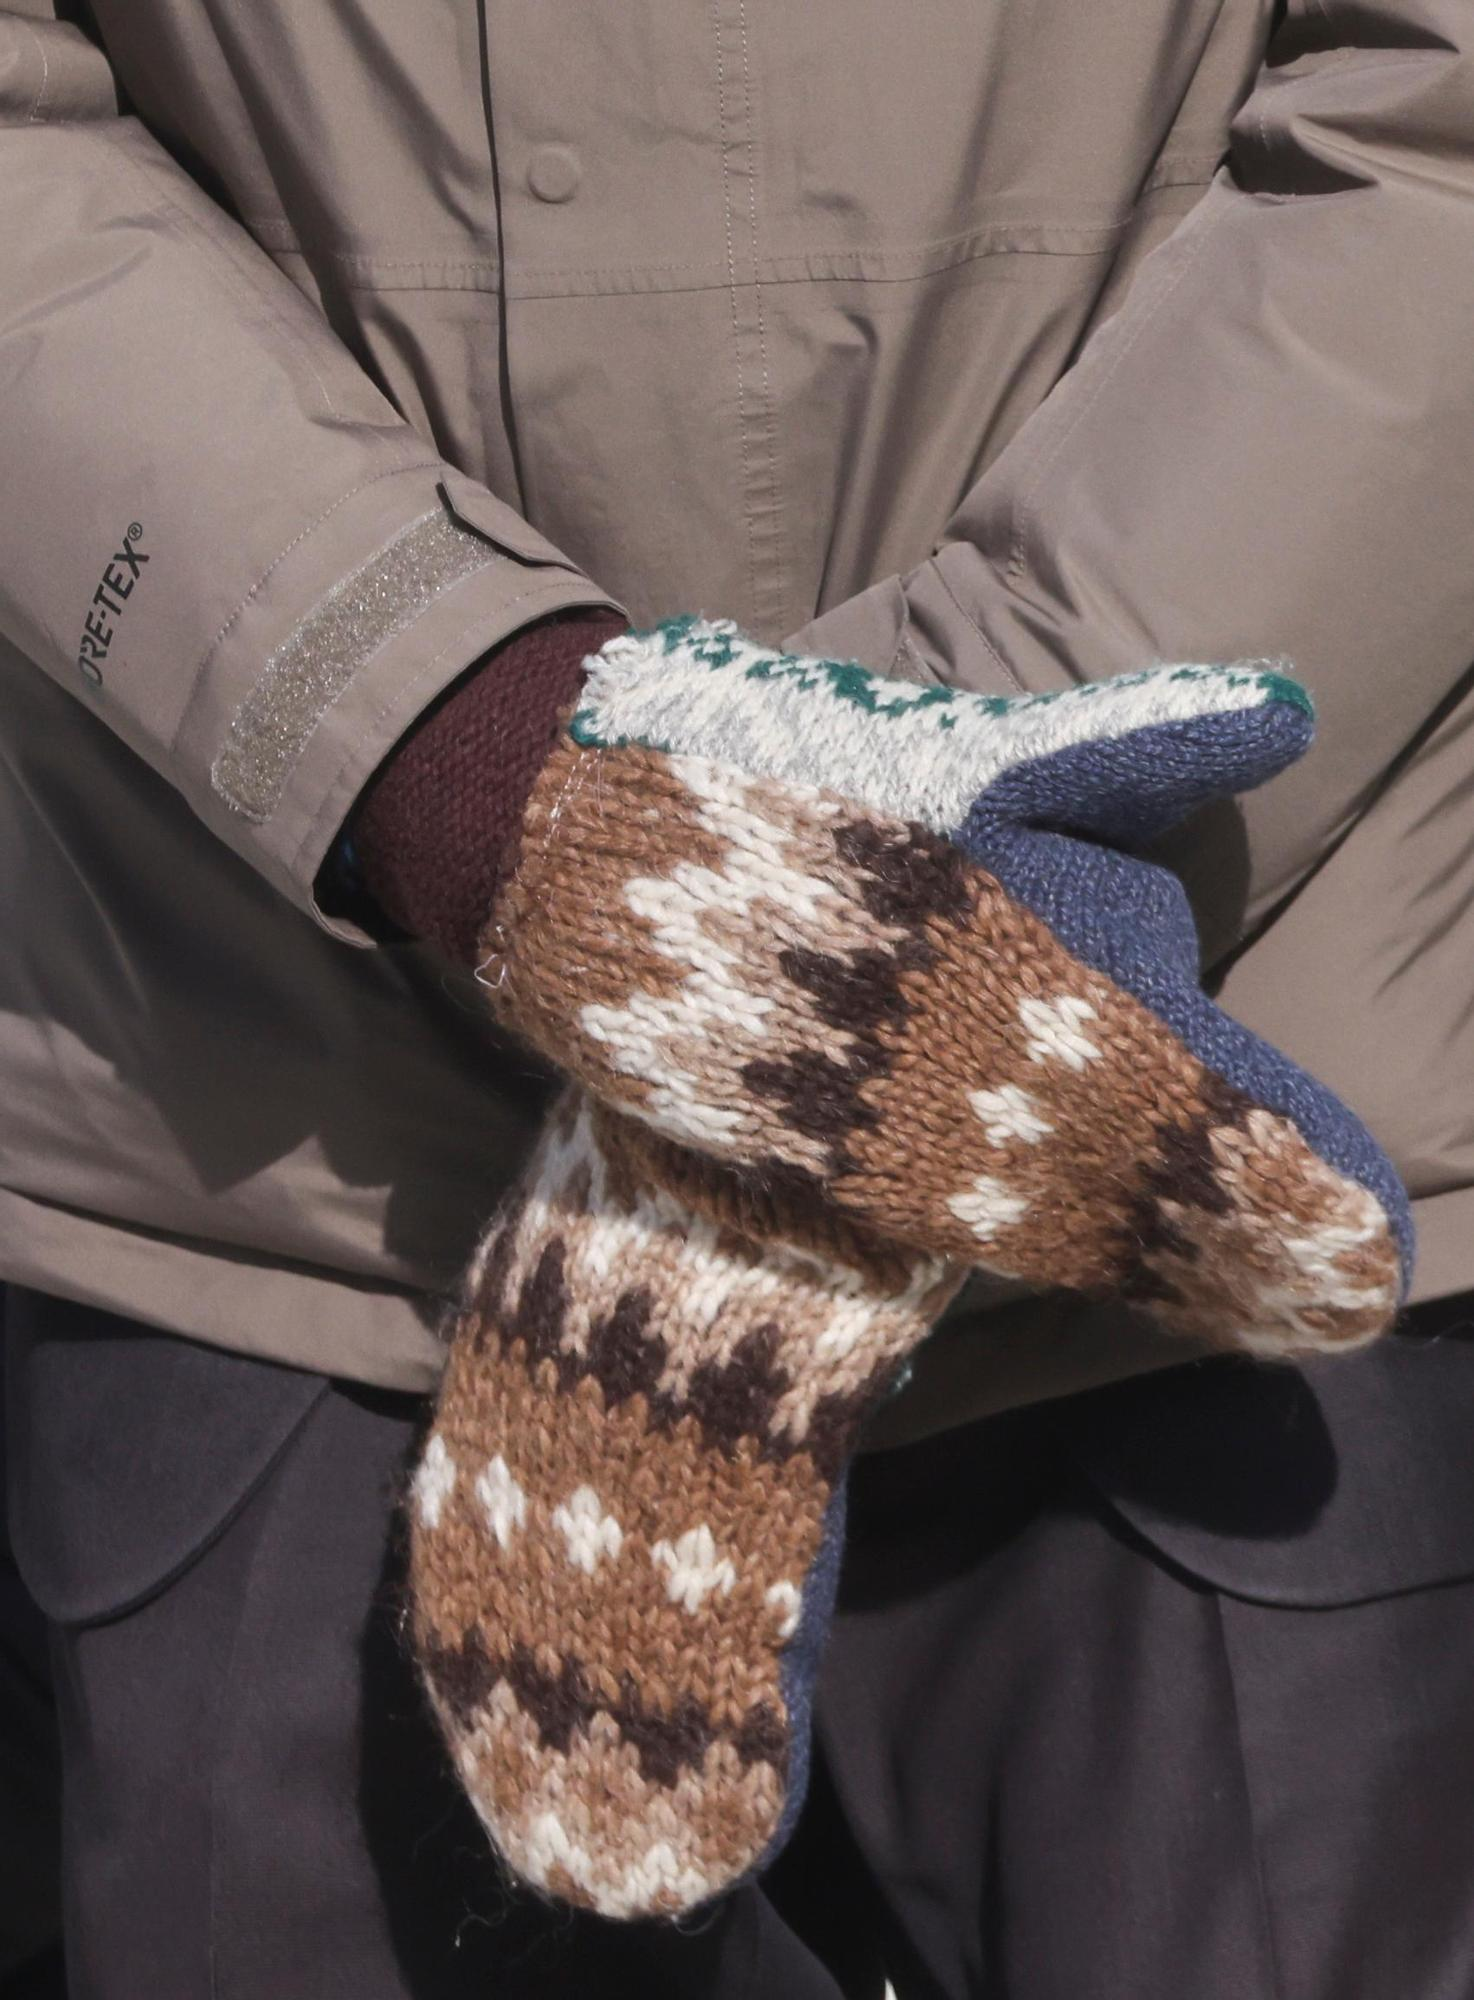 Sanders crossed the eye-catching knit mittens in his lap.